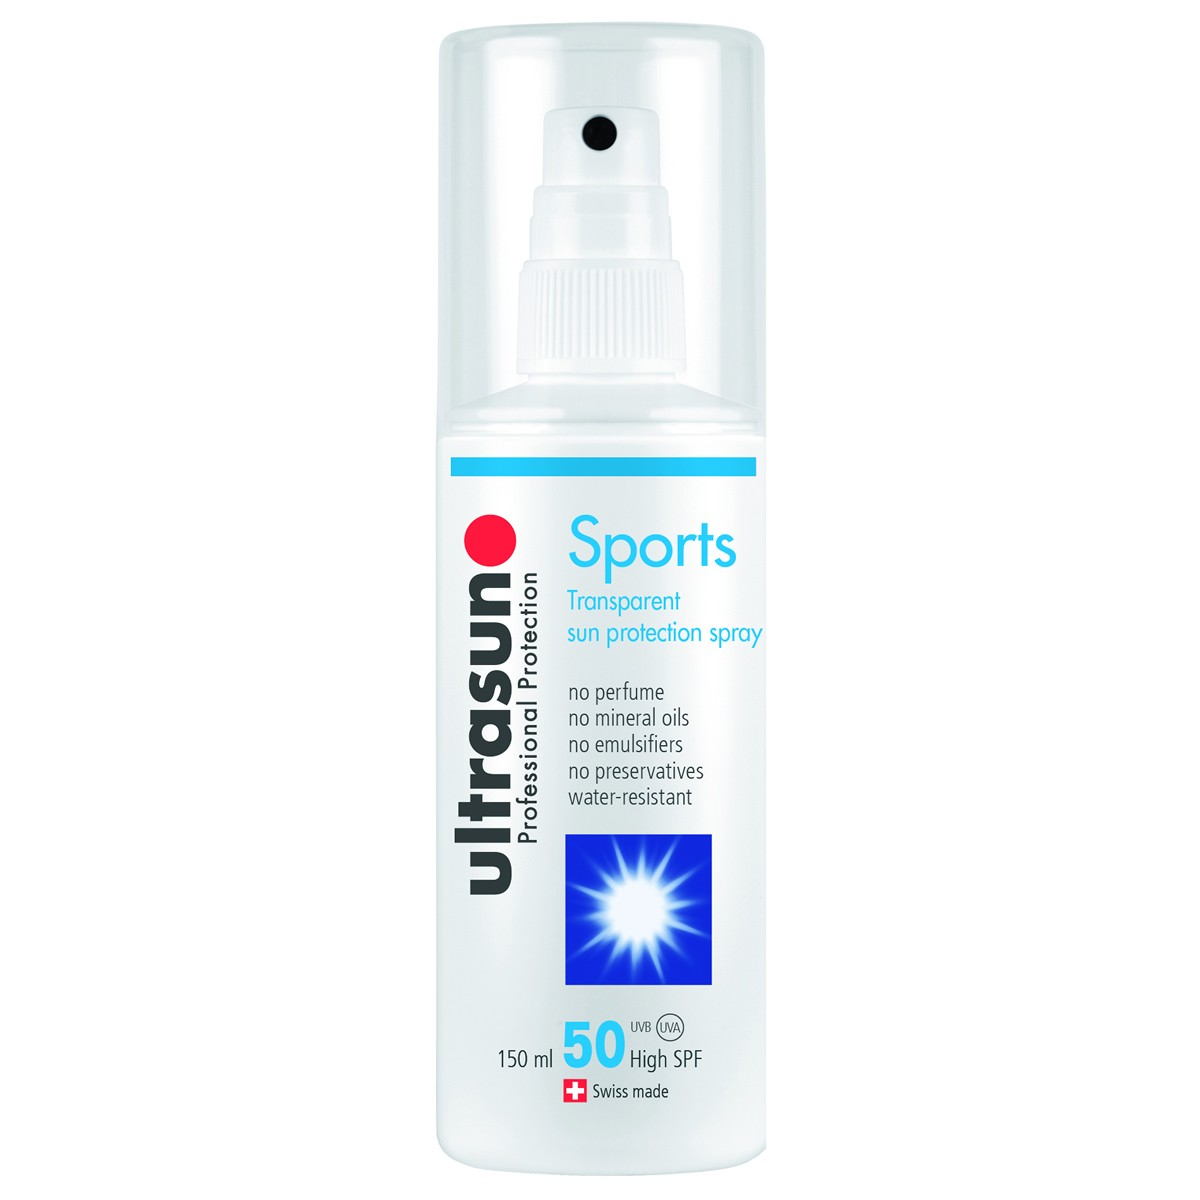 Ultrasun Sports Transparent Sun Protection Spray SPF50